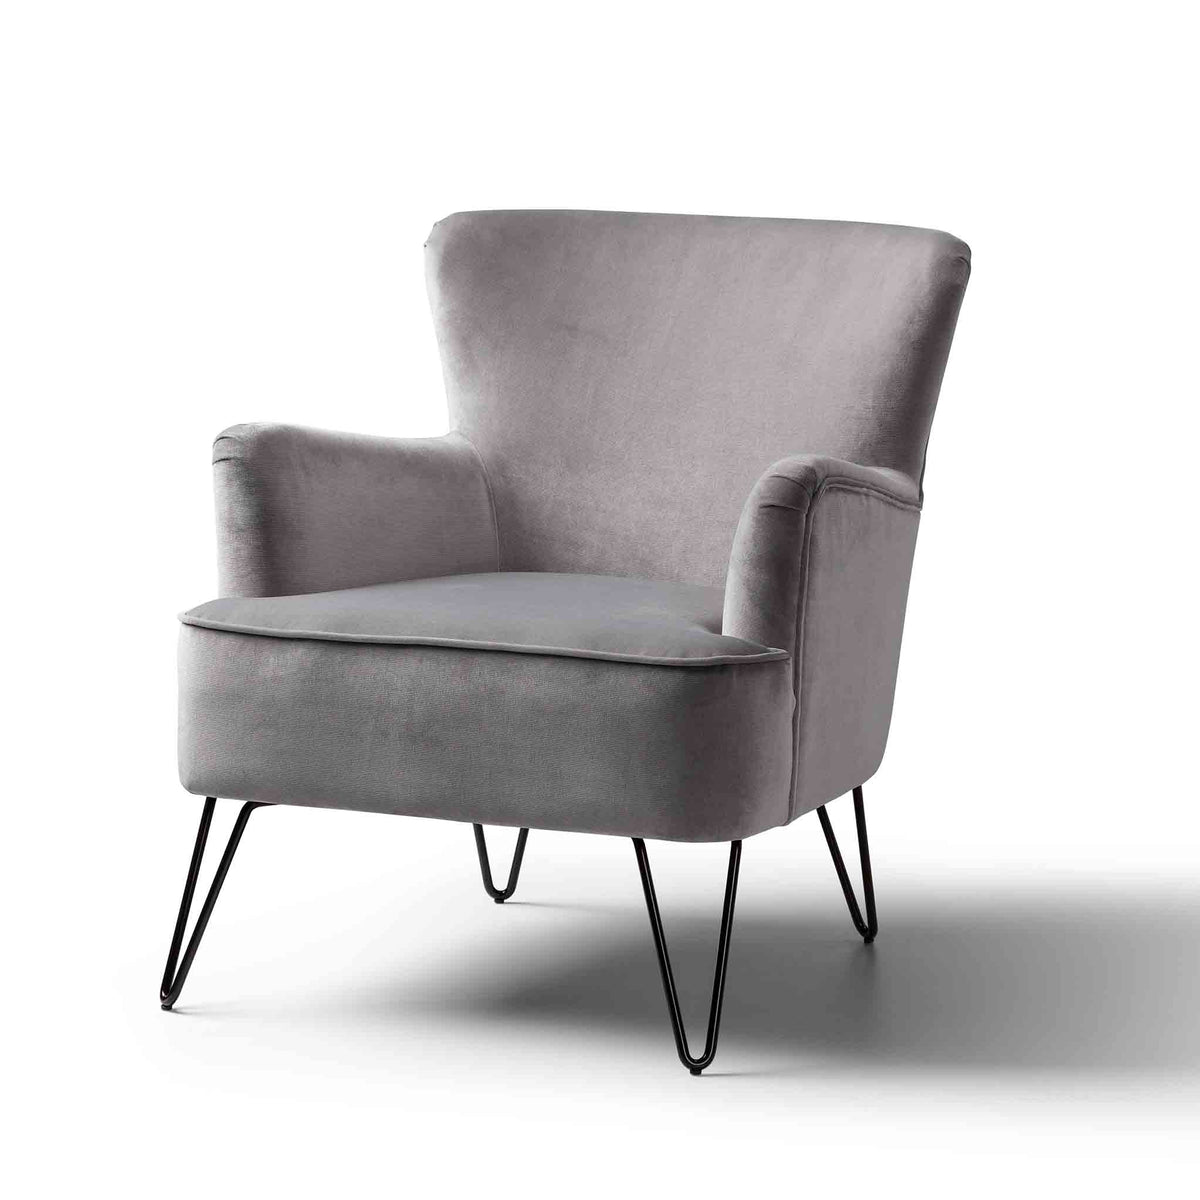 Oasis Velvet Accent Chair - Grey